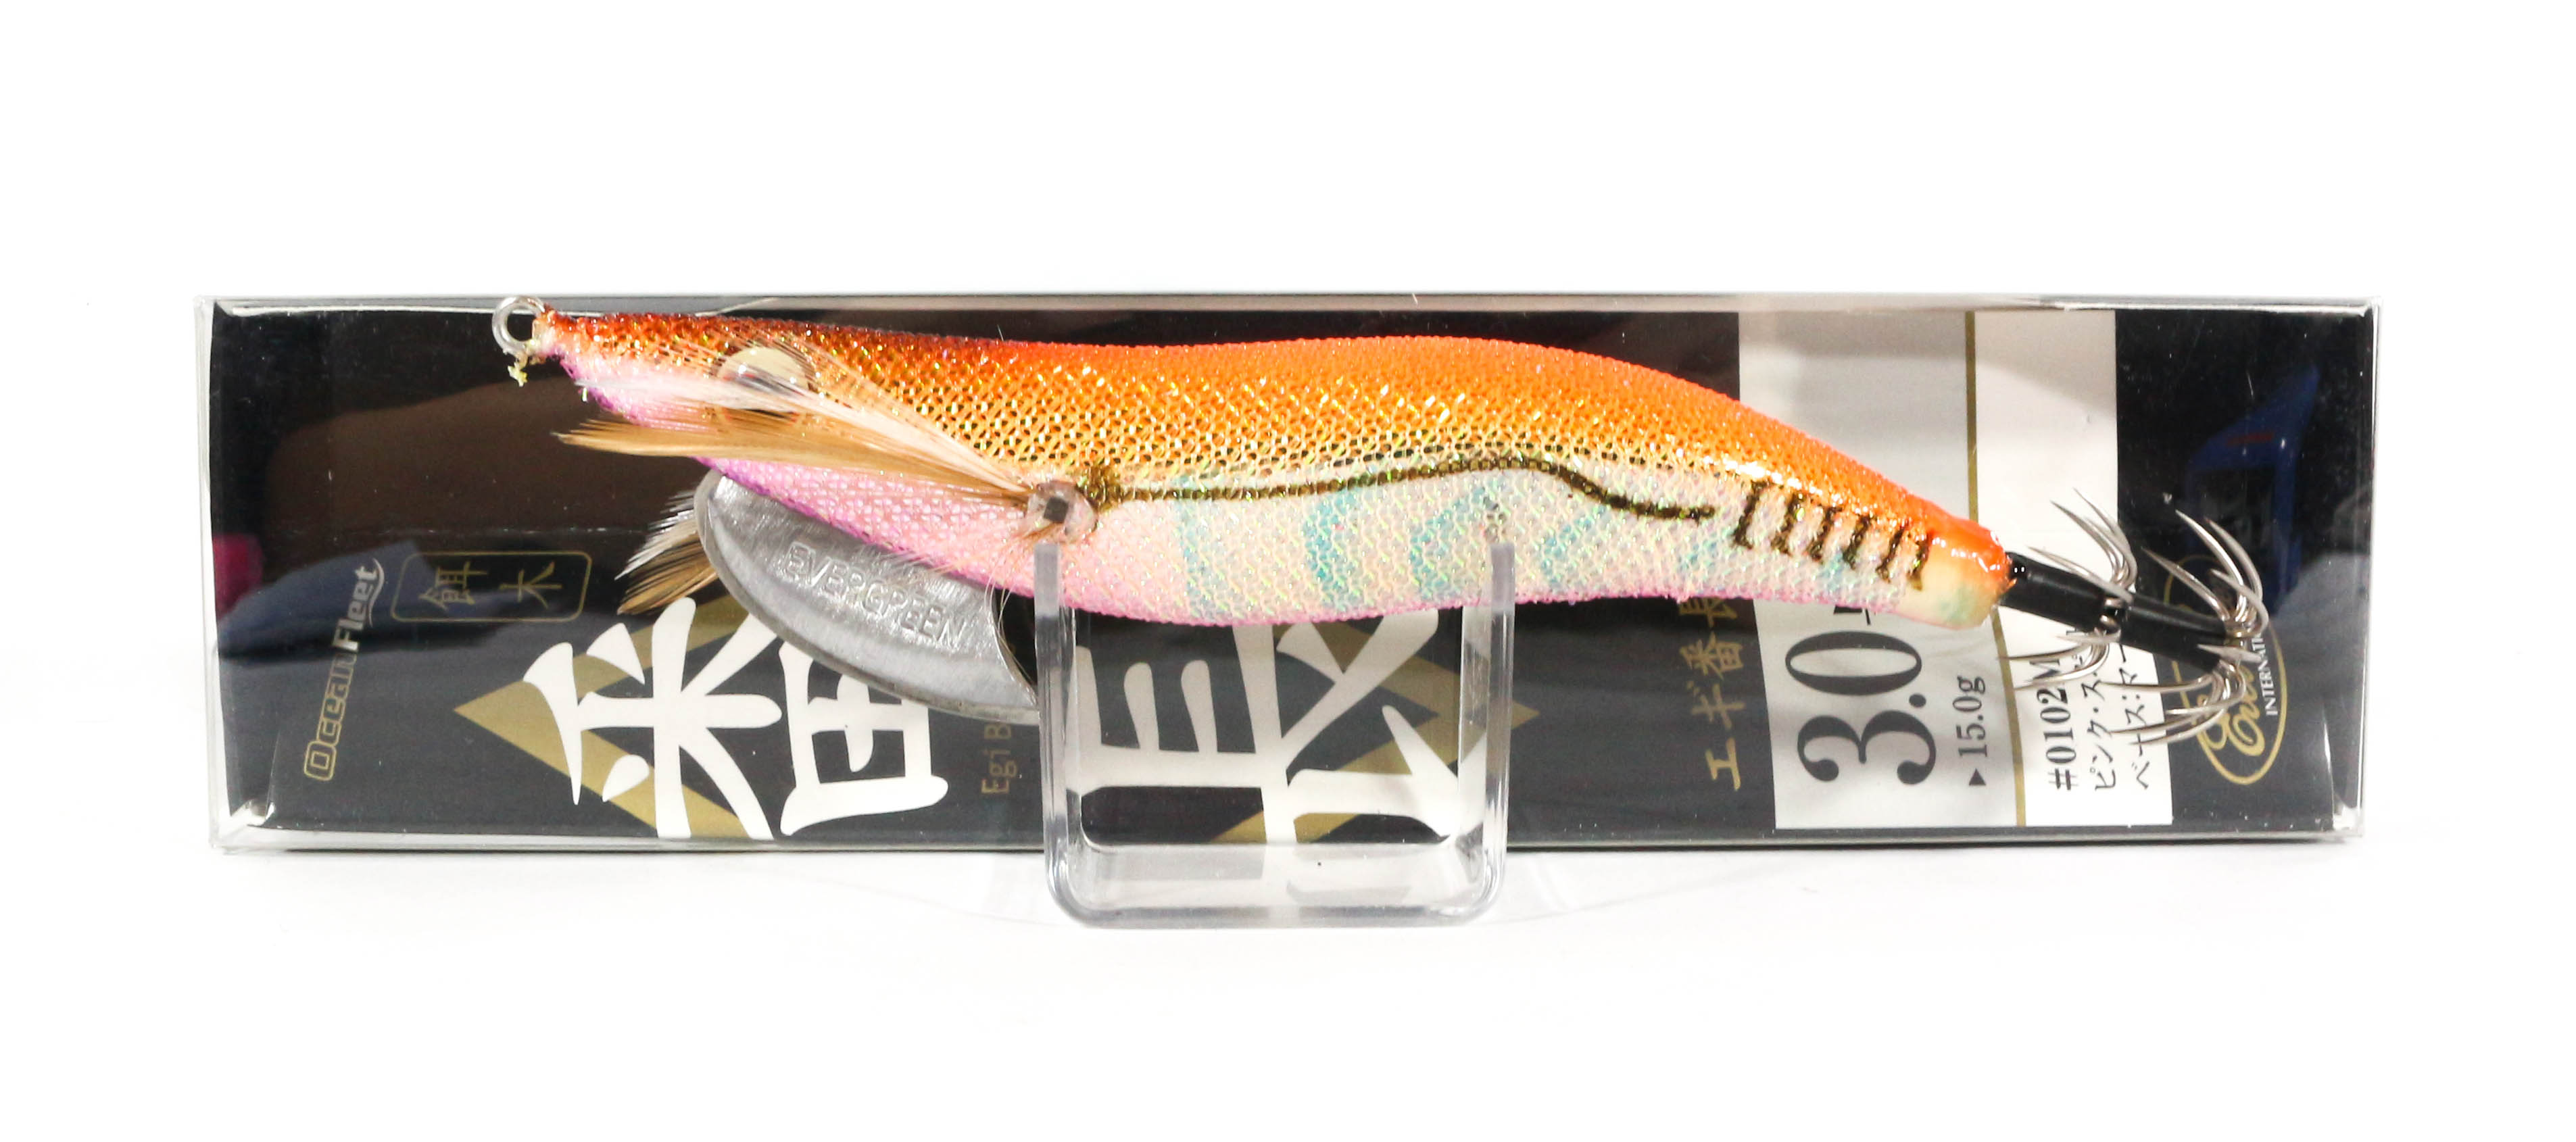 Evergreen Ocean Fleet Custom Squid Jig Lure 3.0 0204S (9019)